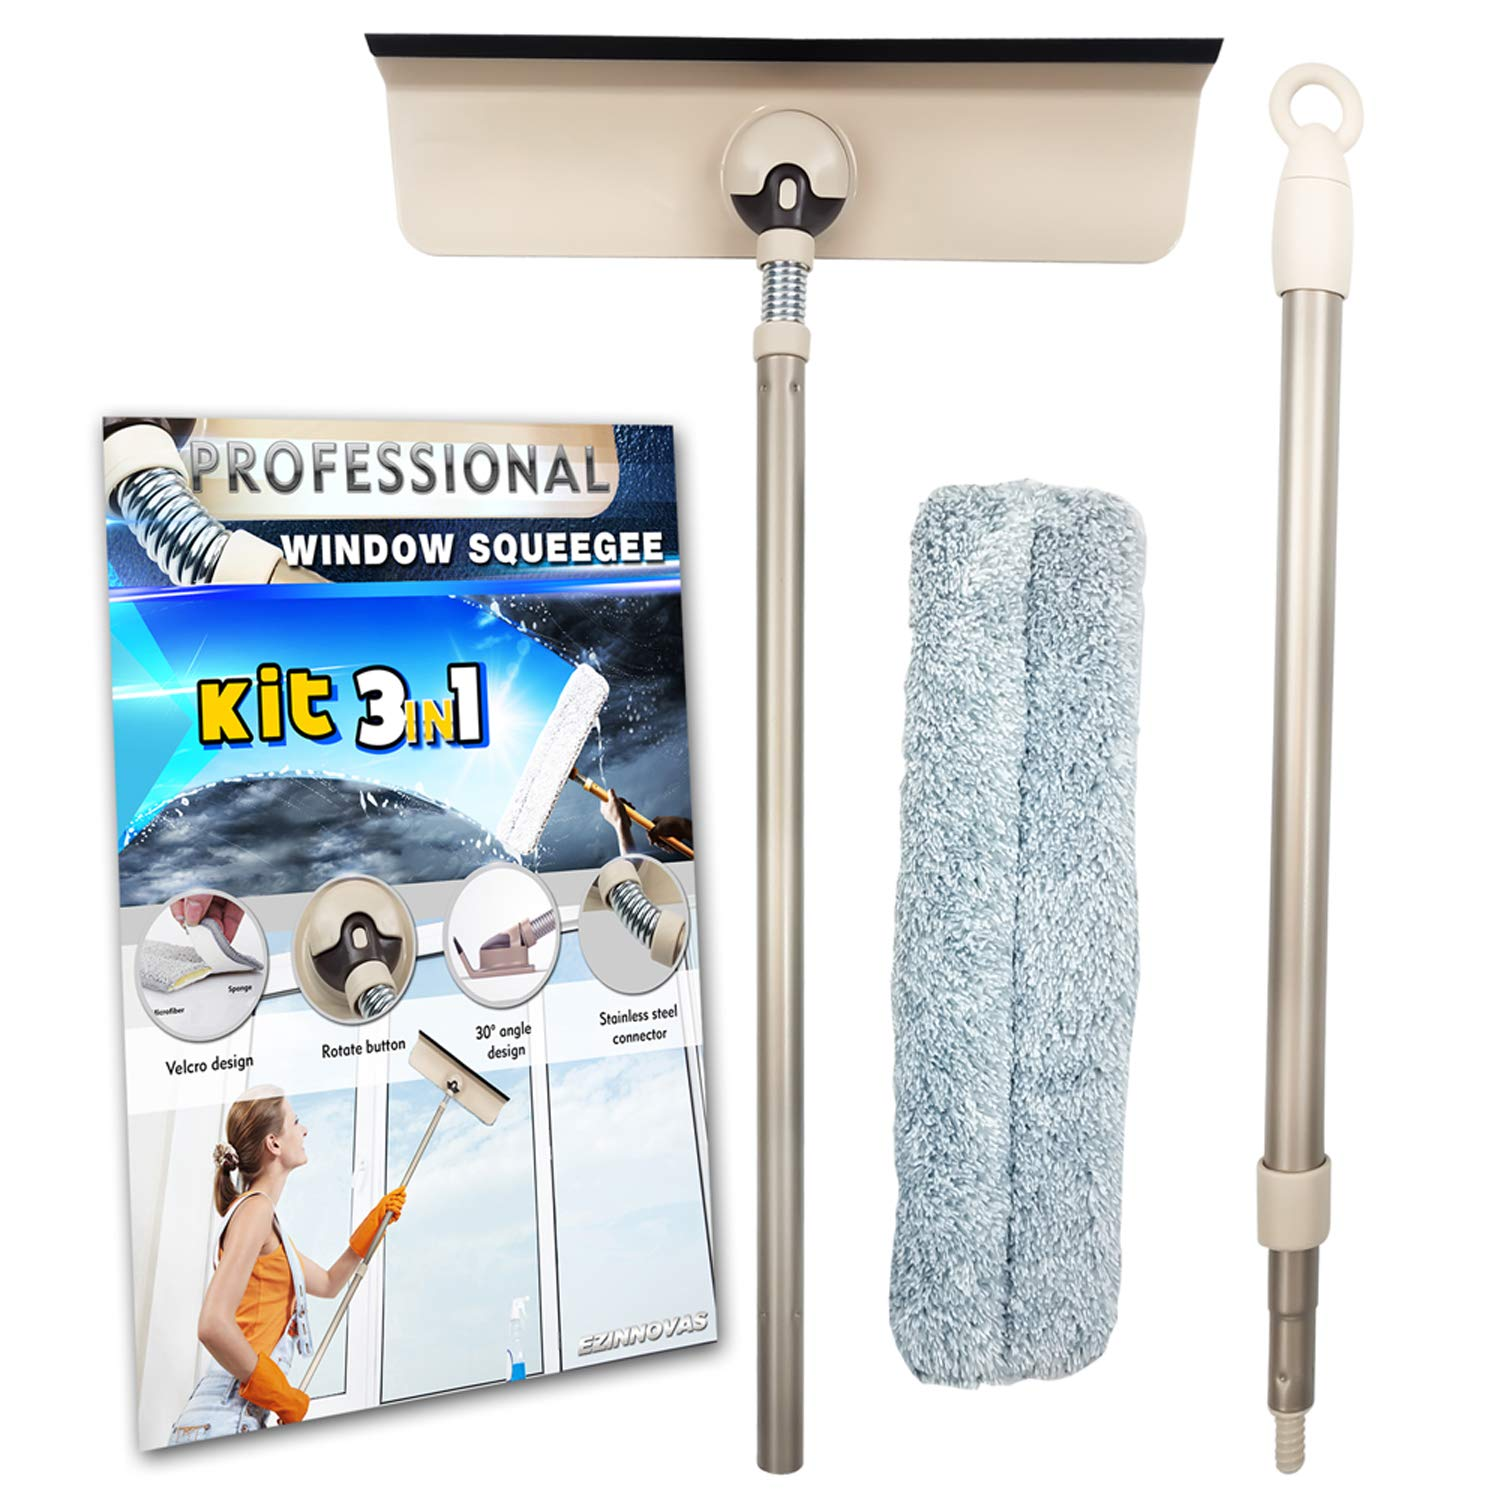 Professional Window Squeegee Kit 3 in 1 Window Cleaning for Glass, Mirror, Shower, Home, Bathroom, and Cars. Aluminum Alloy Extension Pole with Microfiber Scrubber, Compact, Detachable Cleaner.